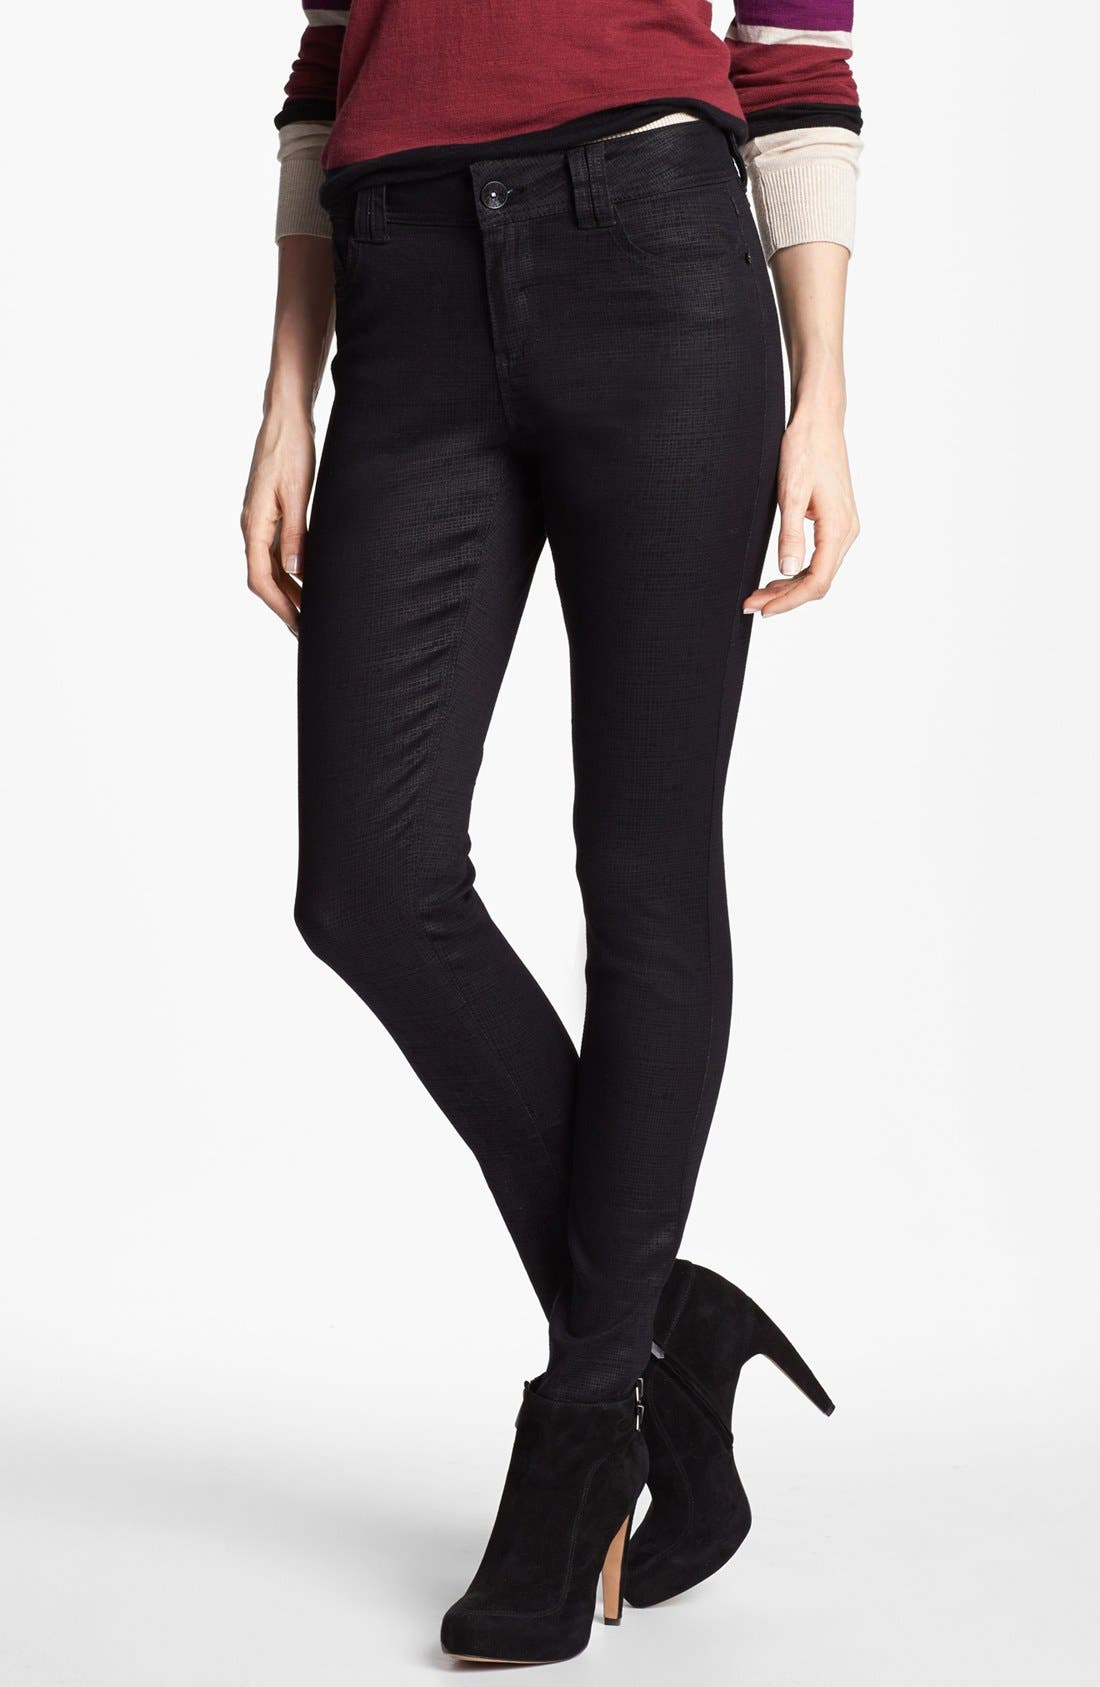 Main Image - Wit & Wisdom Graphic Coated Skinny Jeans (Black) (Nordstrom Exclusive)